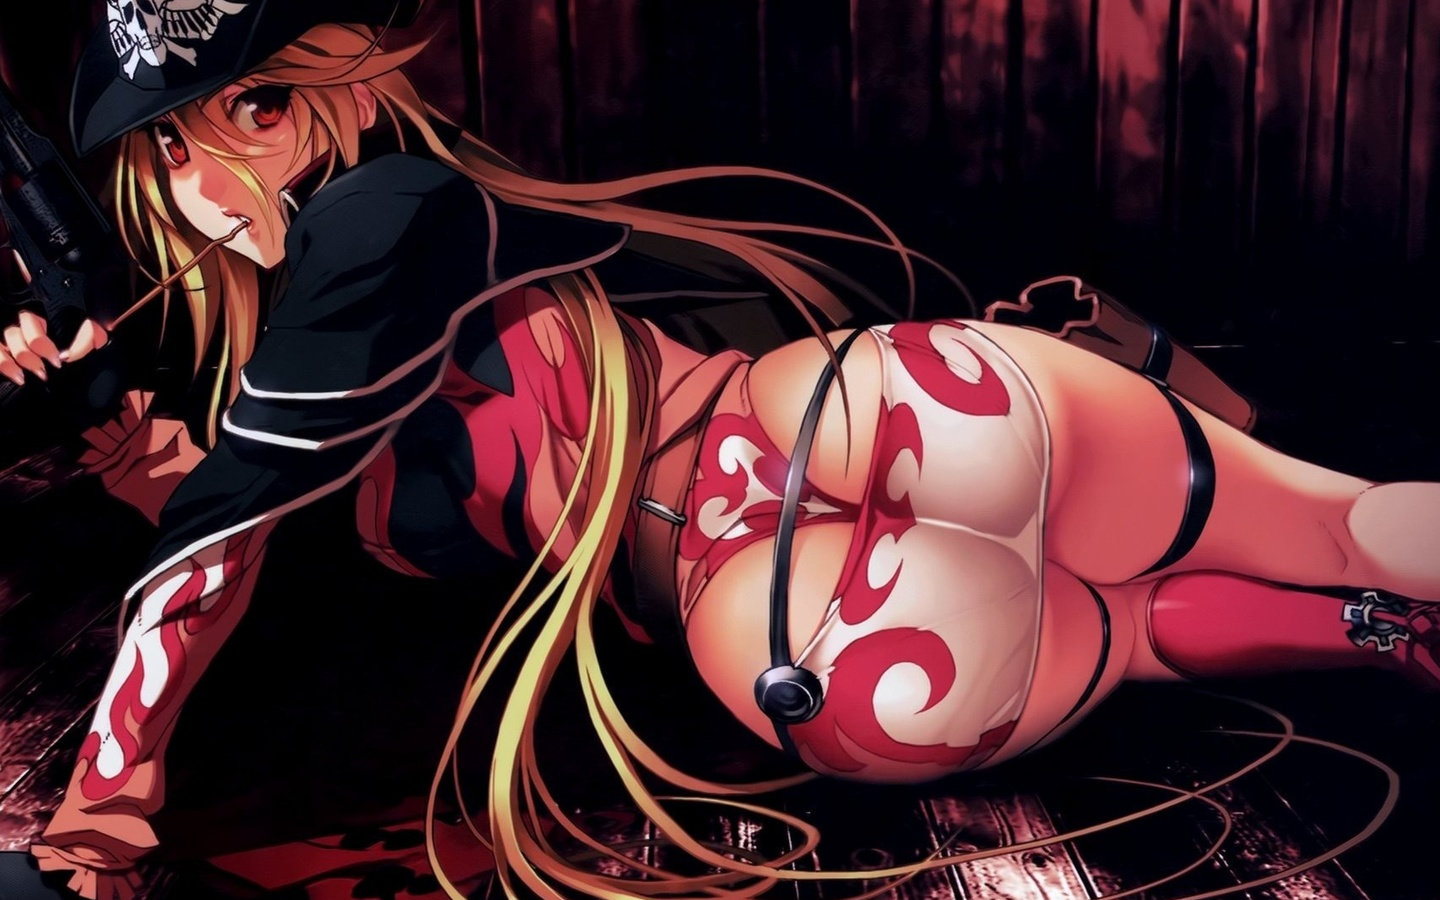 Anime vampire and the rose porn video sex pictures